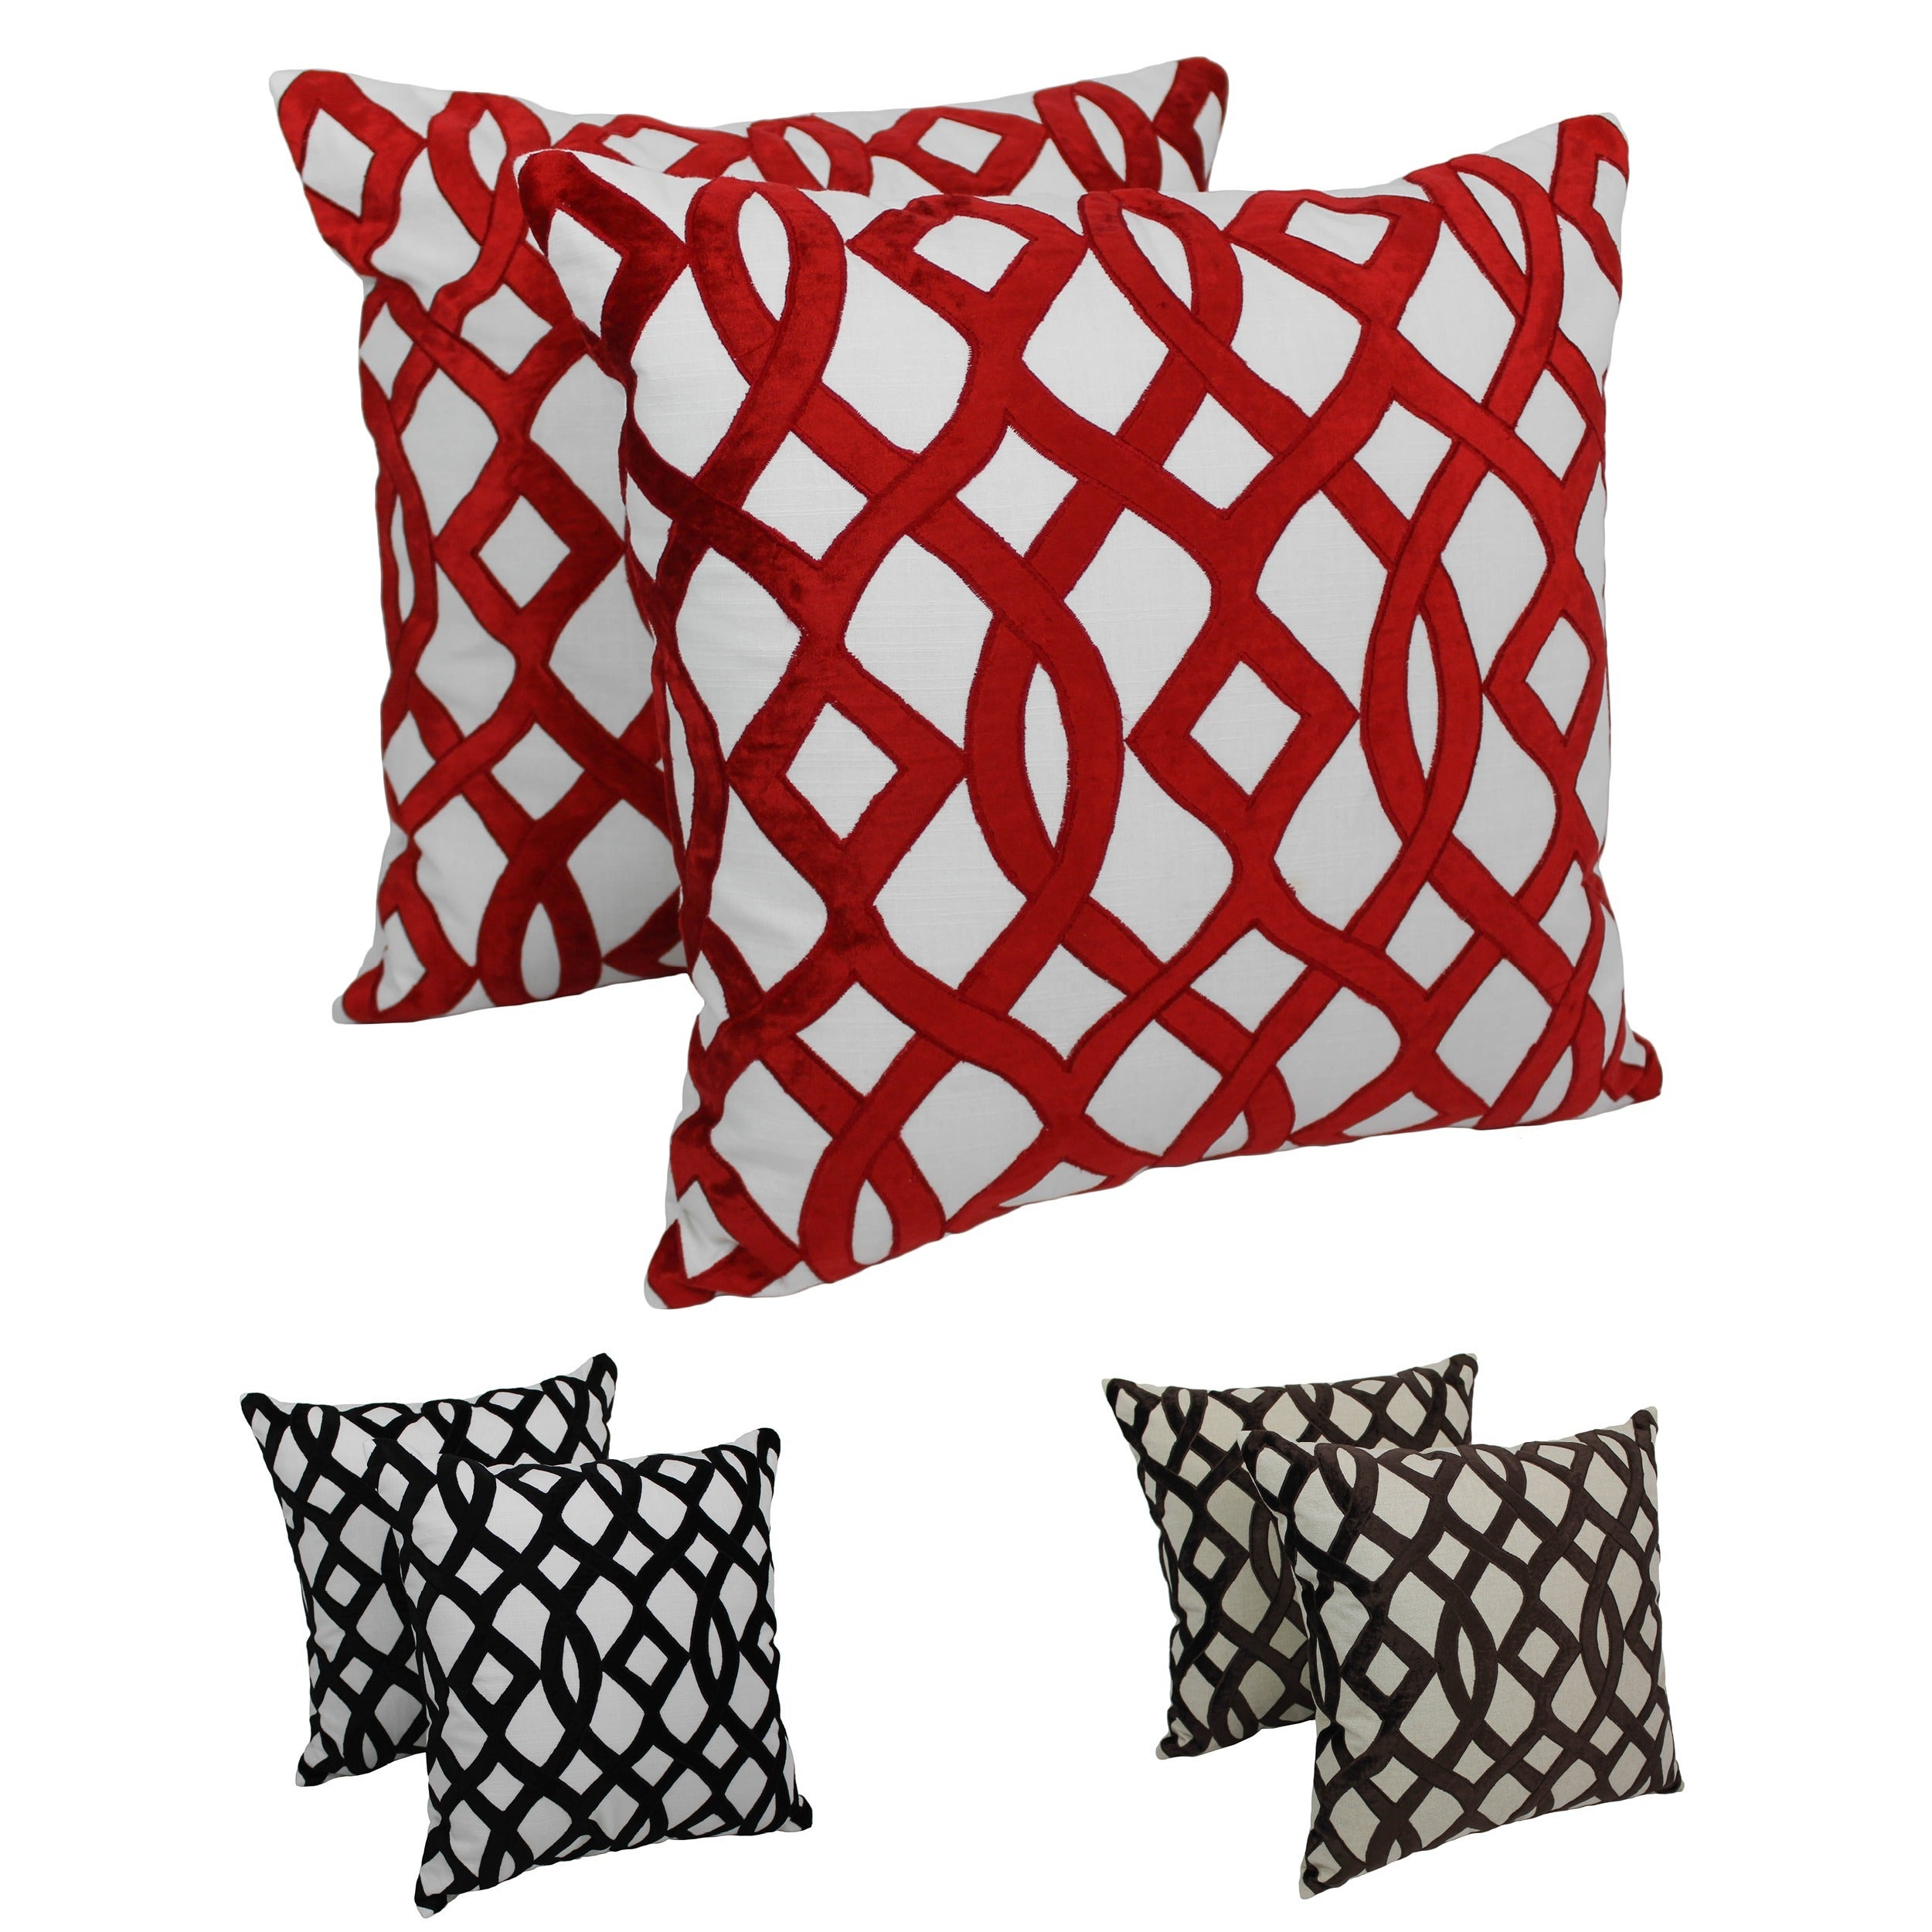 print products treillage in a imperial beautiful pillow pillows trellis color